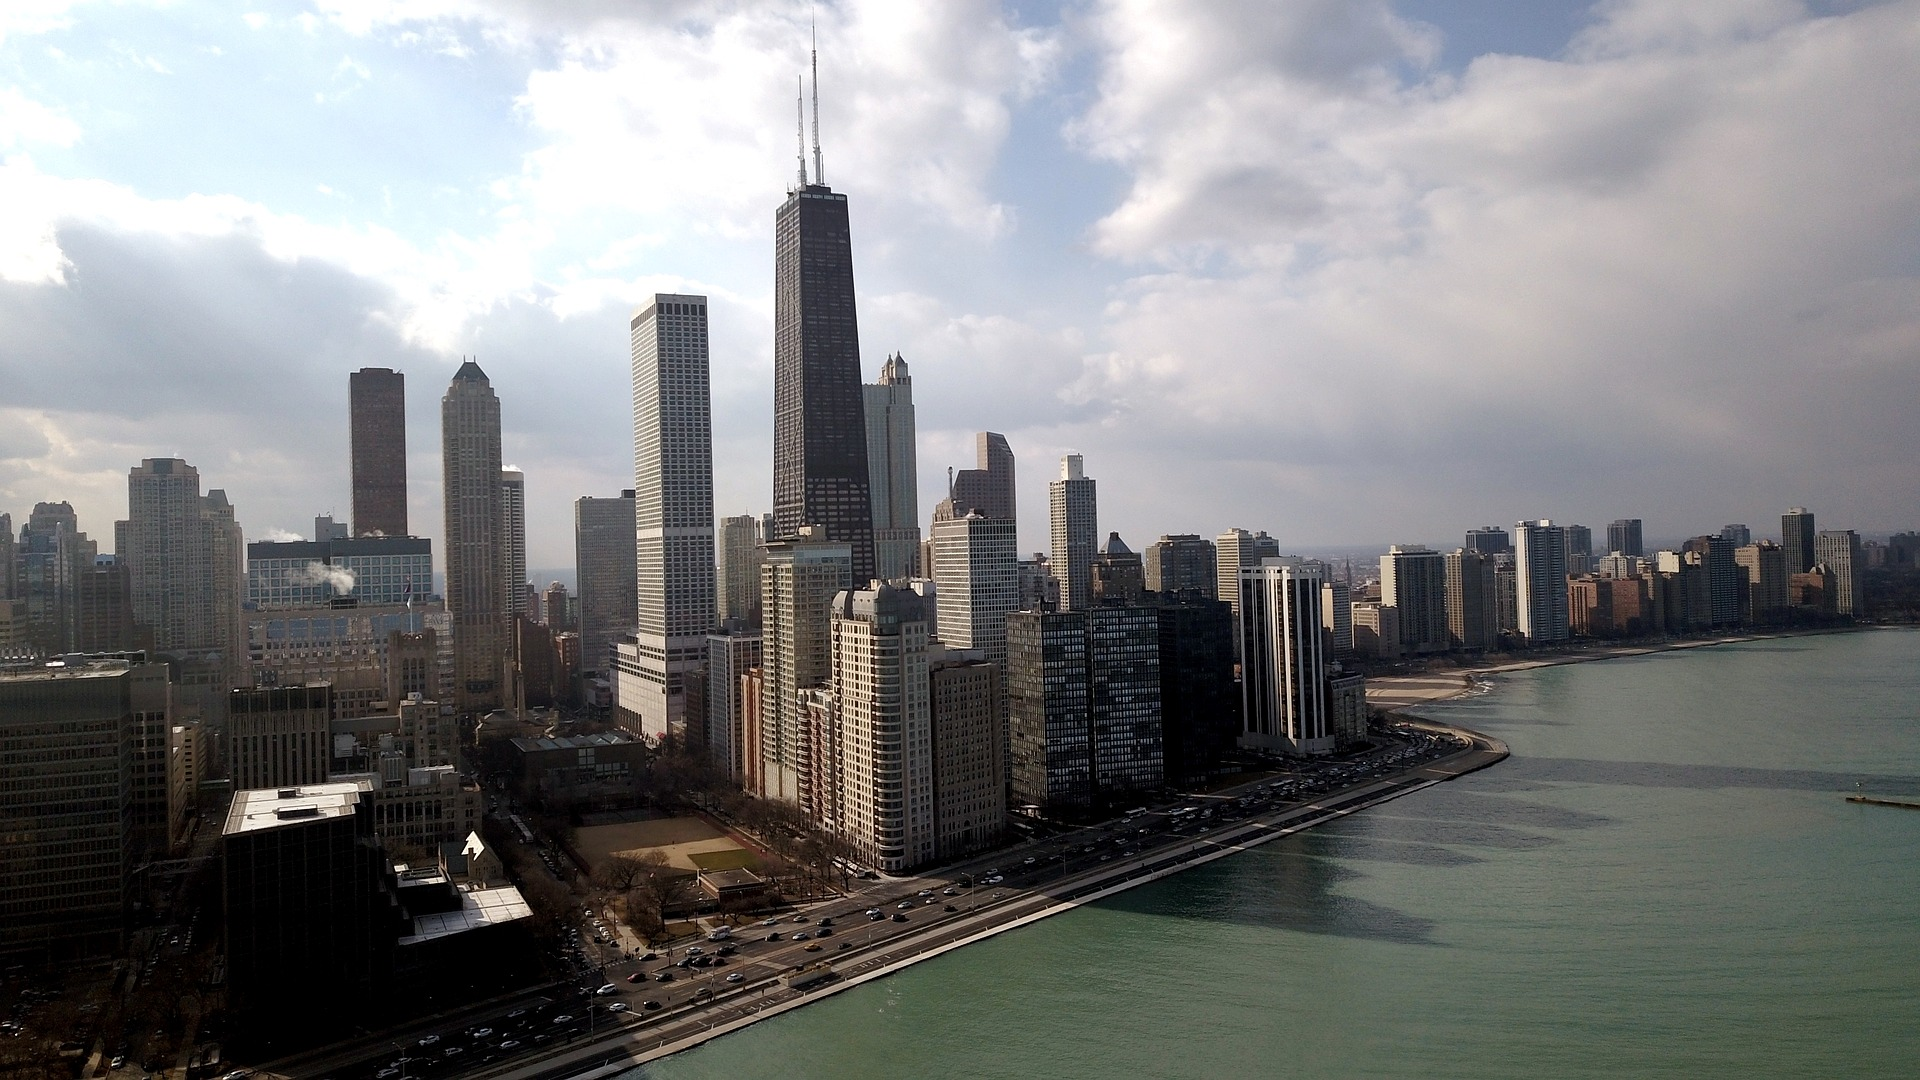 Chicago skyline with Lake Shore Drive visible.